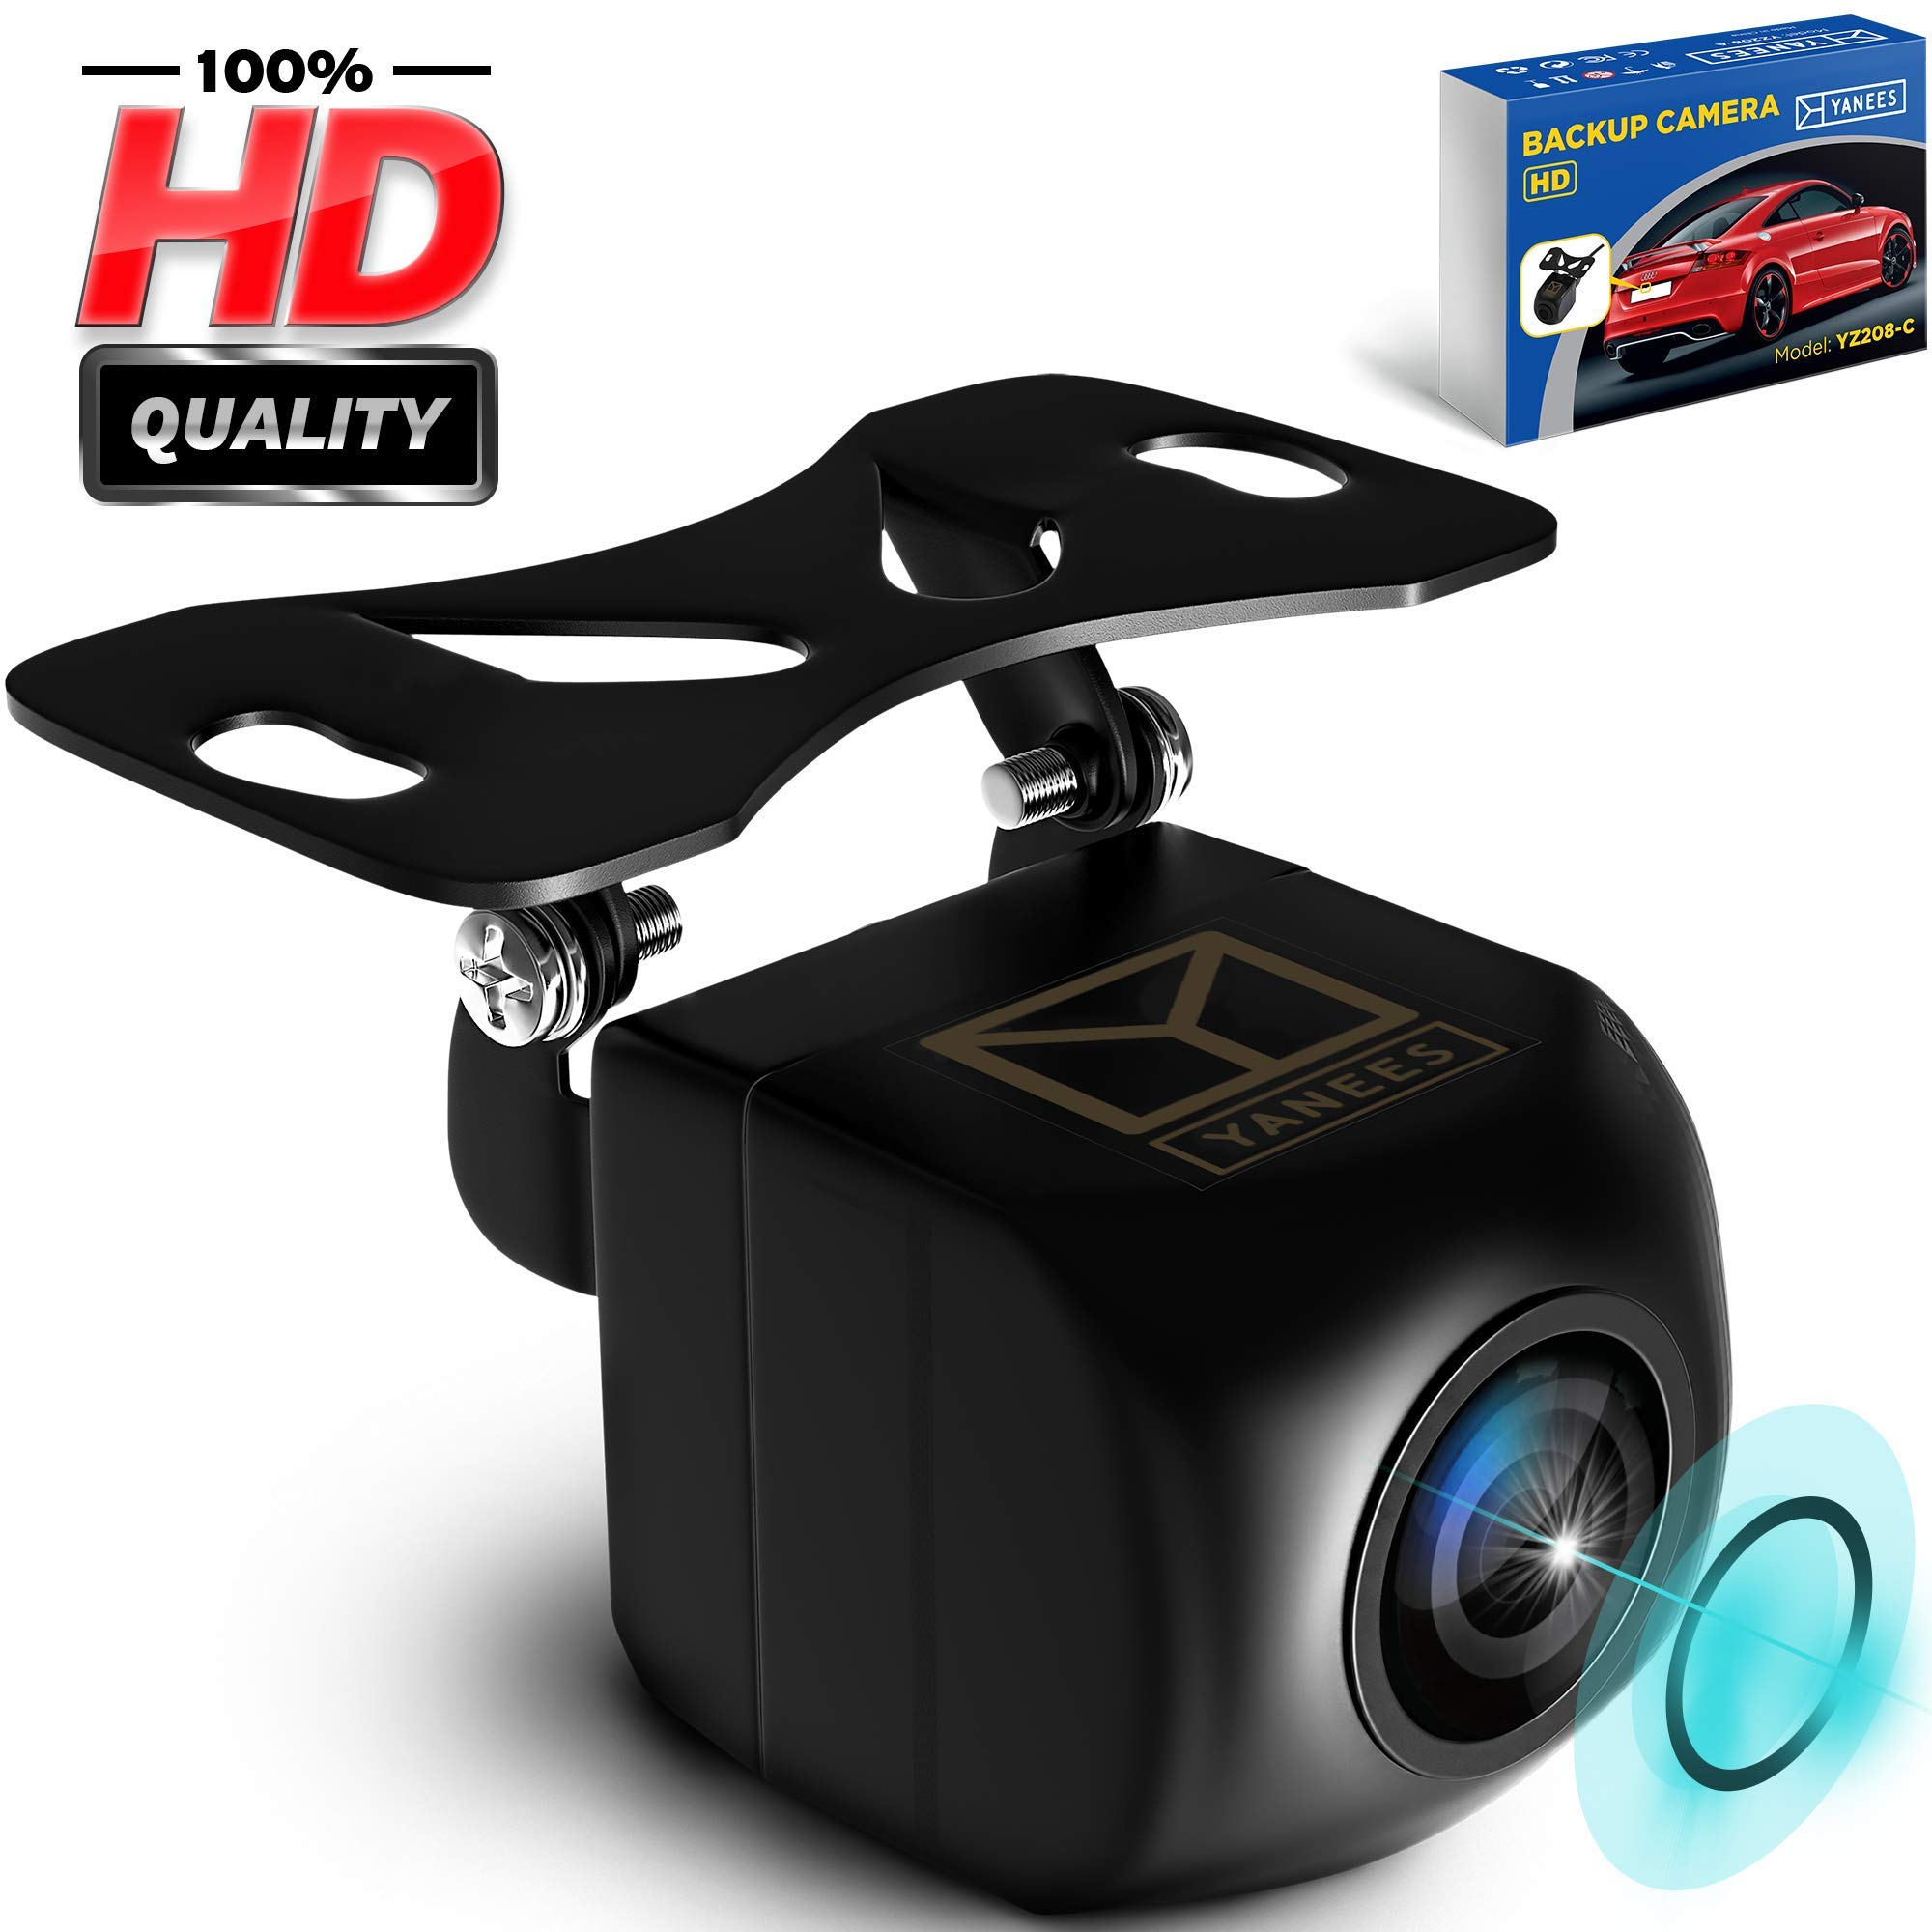 Backup Camera Night Vision - HD Car Rear View Camera - Parking GuideLines ON/Off - Wide View Angel - Waterproof Reverse Auto Back Up Car Backing Camera - High Definition - Fits All Vehicles by Yanees by Yanees